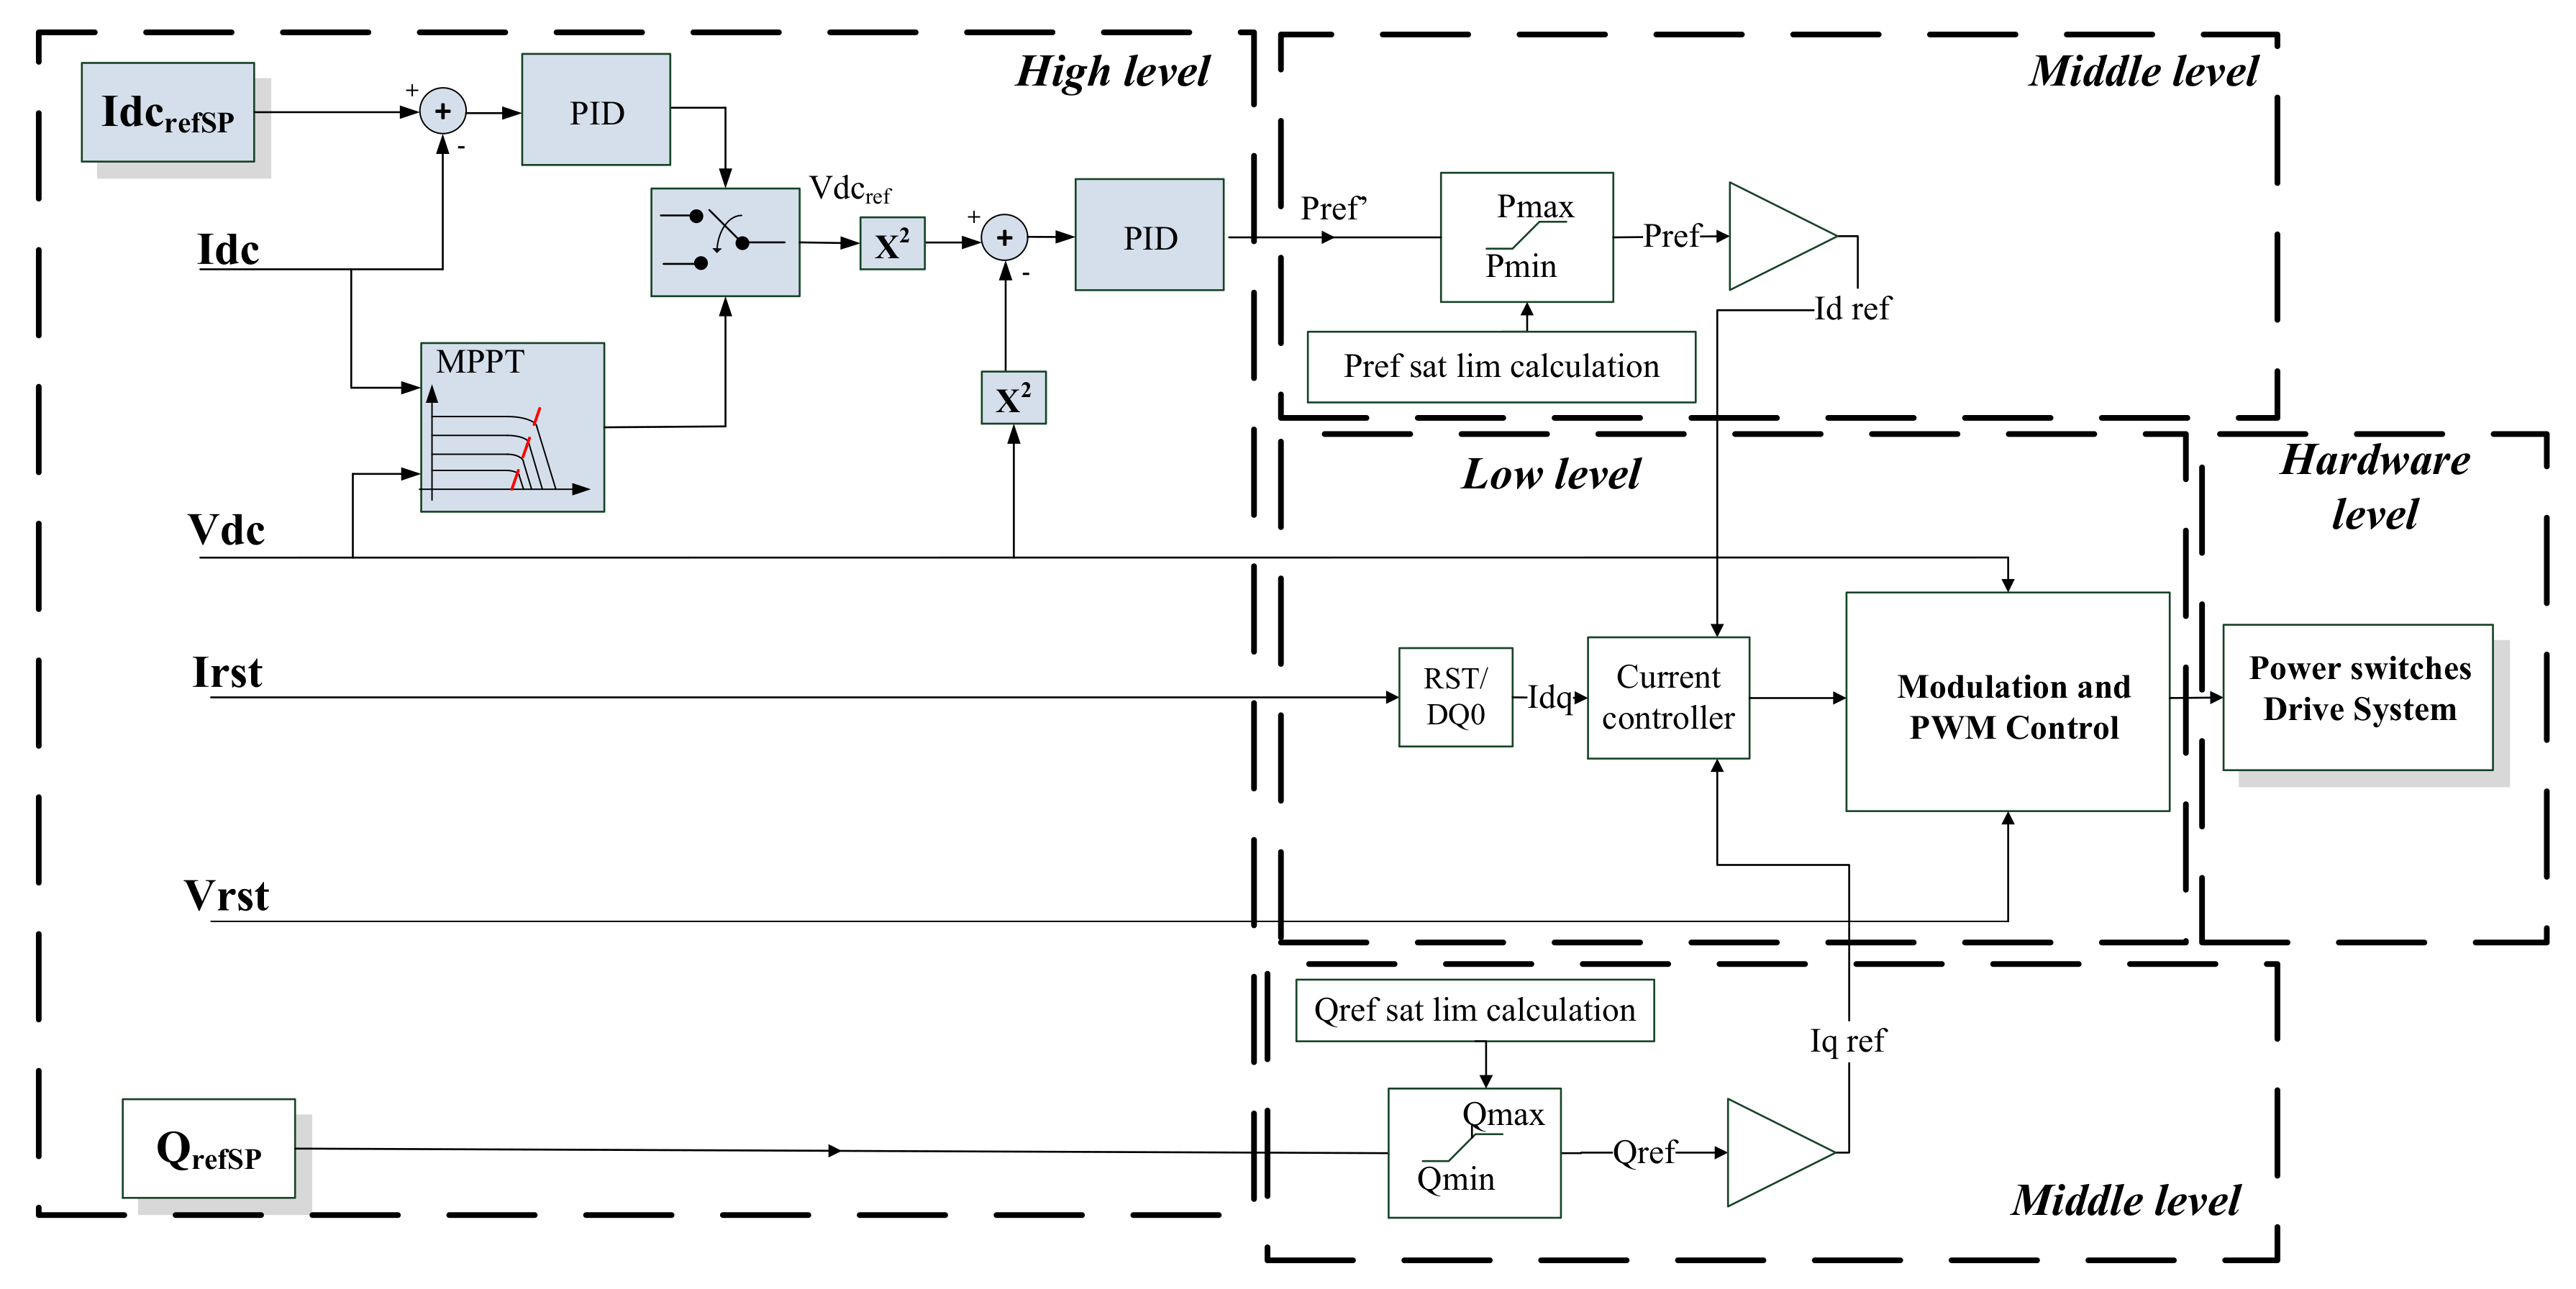 Applied Sciences Free Full Text Novel Utility Scale Photovoltaic Plant Electroluminescence Maintenance Technique By Means Of Bidirectional Power Inverter Controller Html